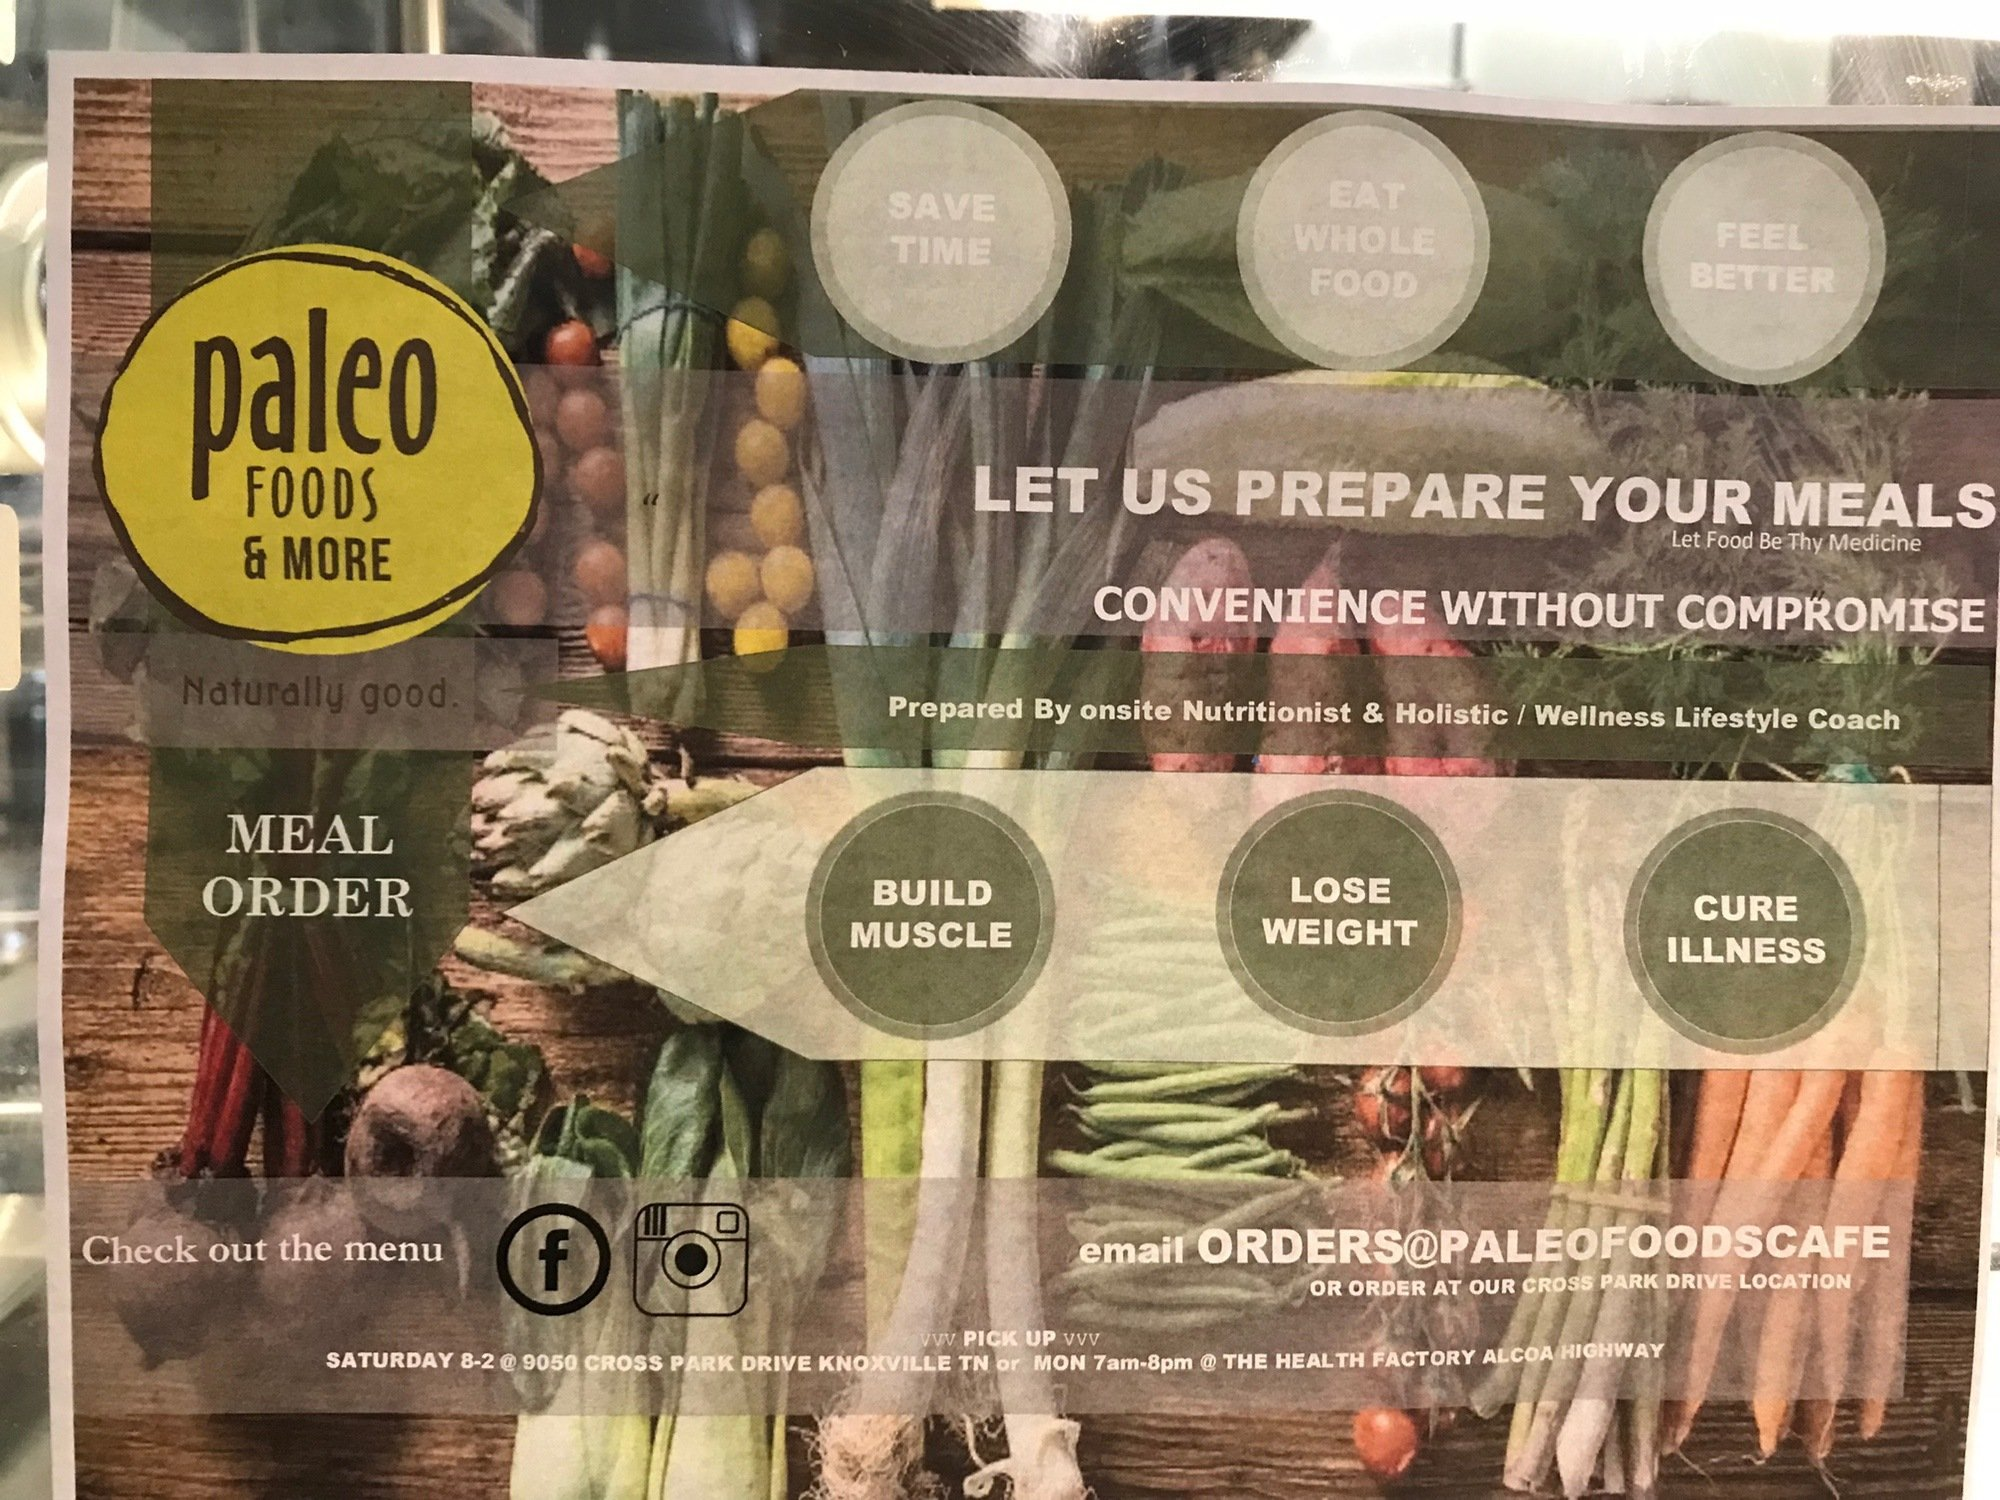 Paleo Foods Café and More - our local, organic option for eating out! 1